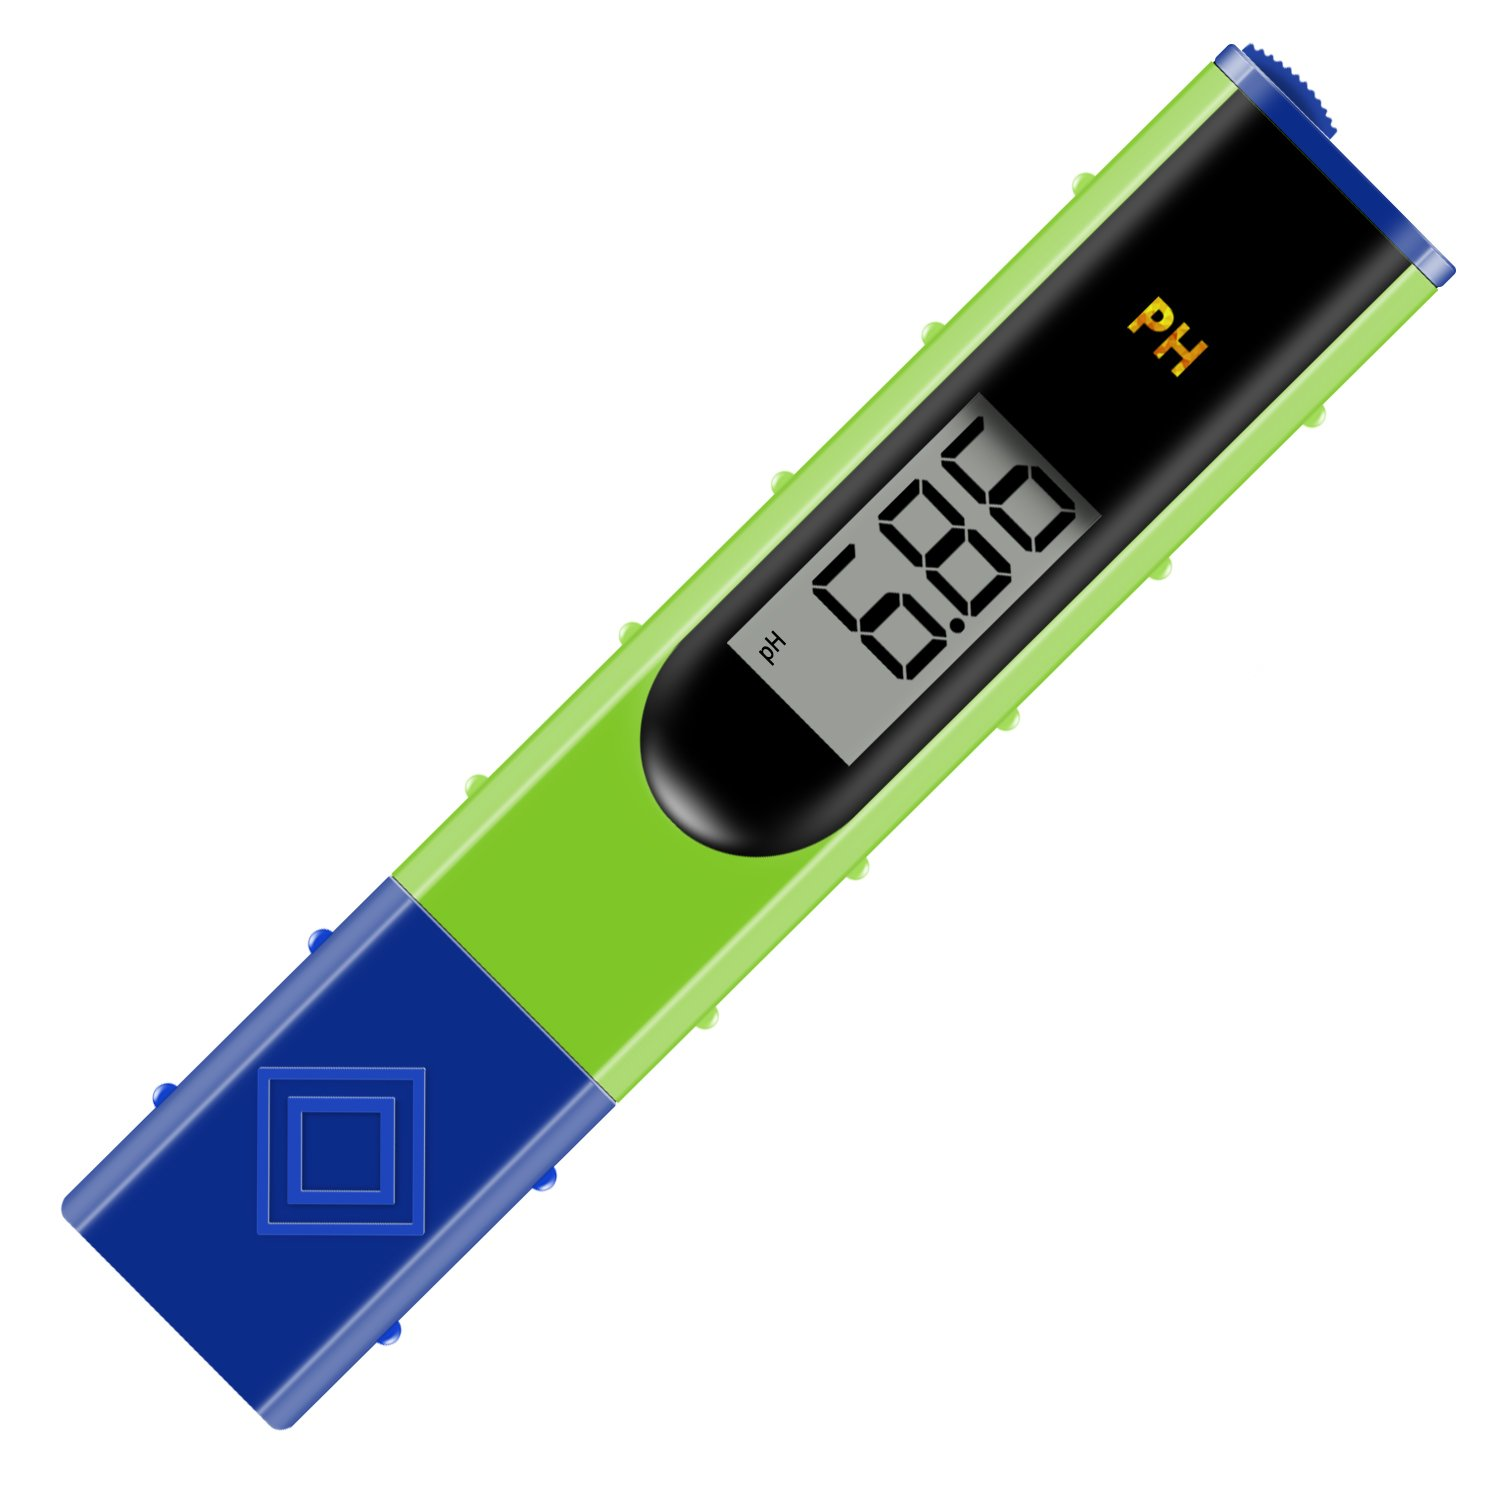 "pH Meter, Jellas pH-061 0.01 Resolution Pocket Size pH Meter Water Quality Tester with 1.2"" Arc LCD Display for Household Drinking Water, Pool and Aquarium Water pH Test."